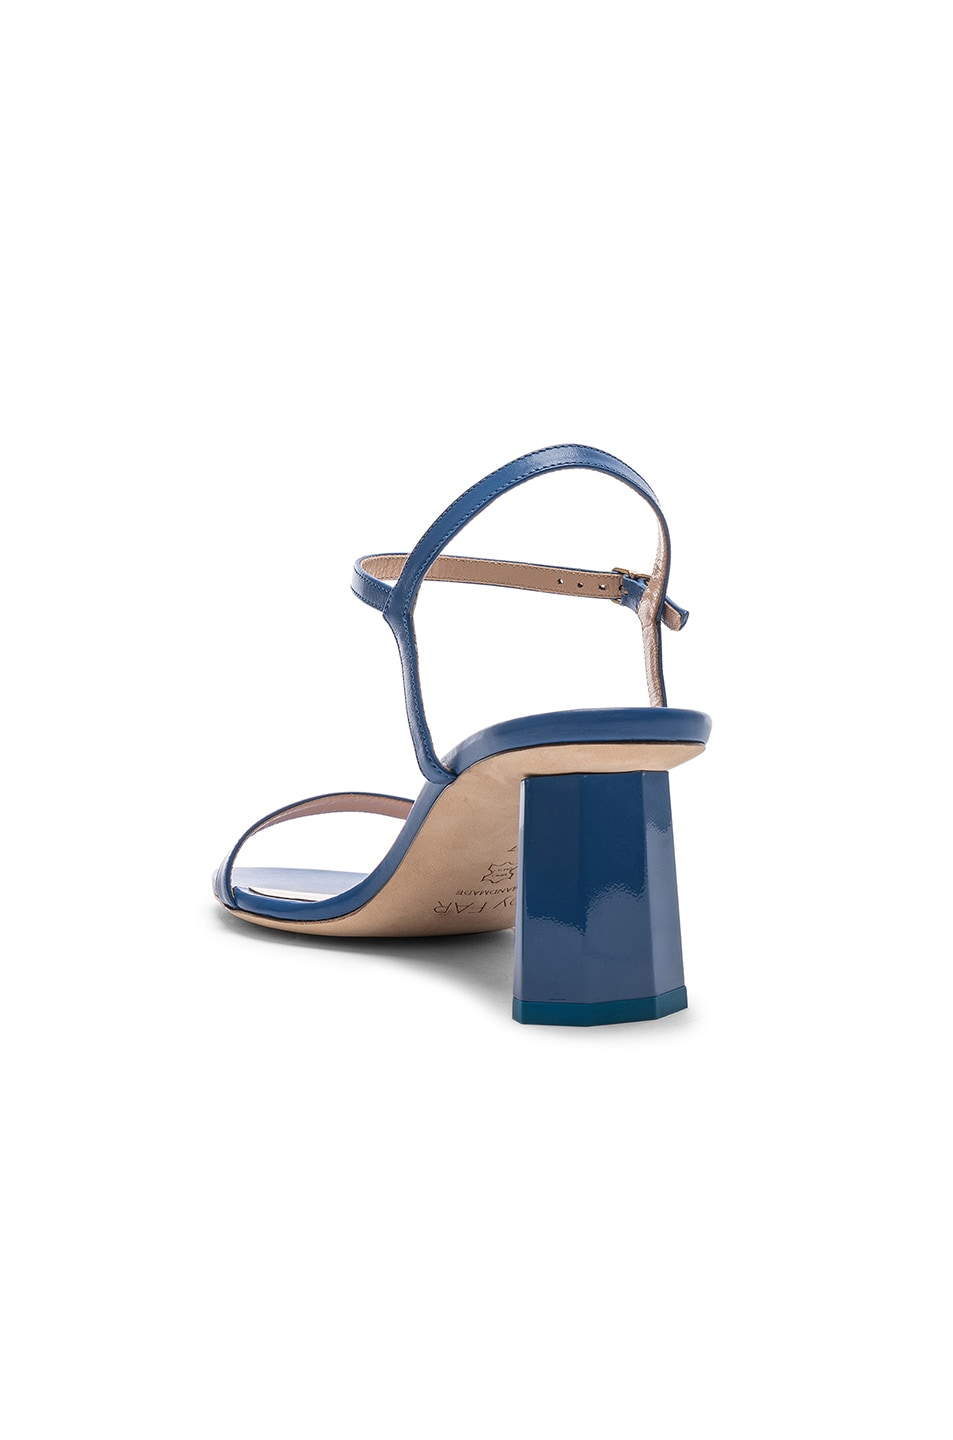 Image 3 of By Far Magnolia Sandal in Marine Blue Leather